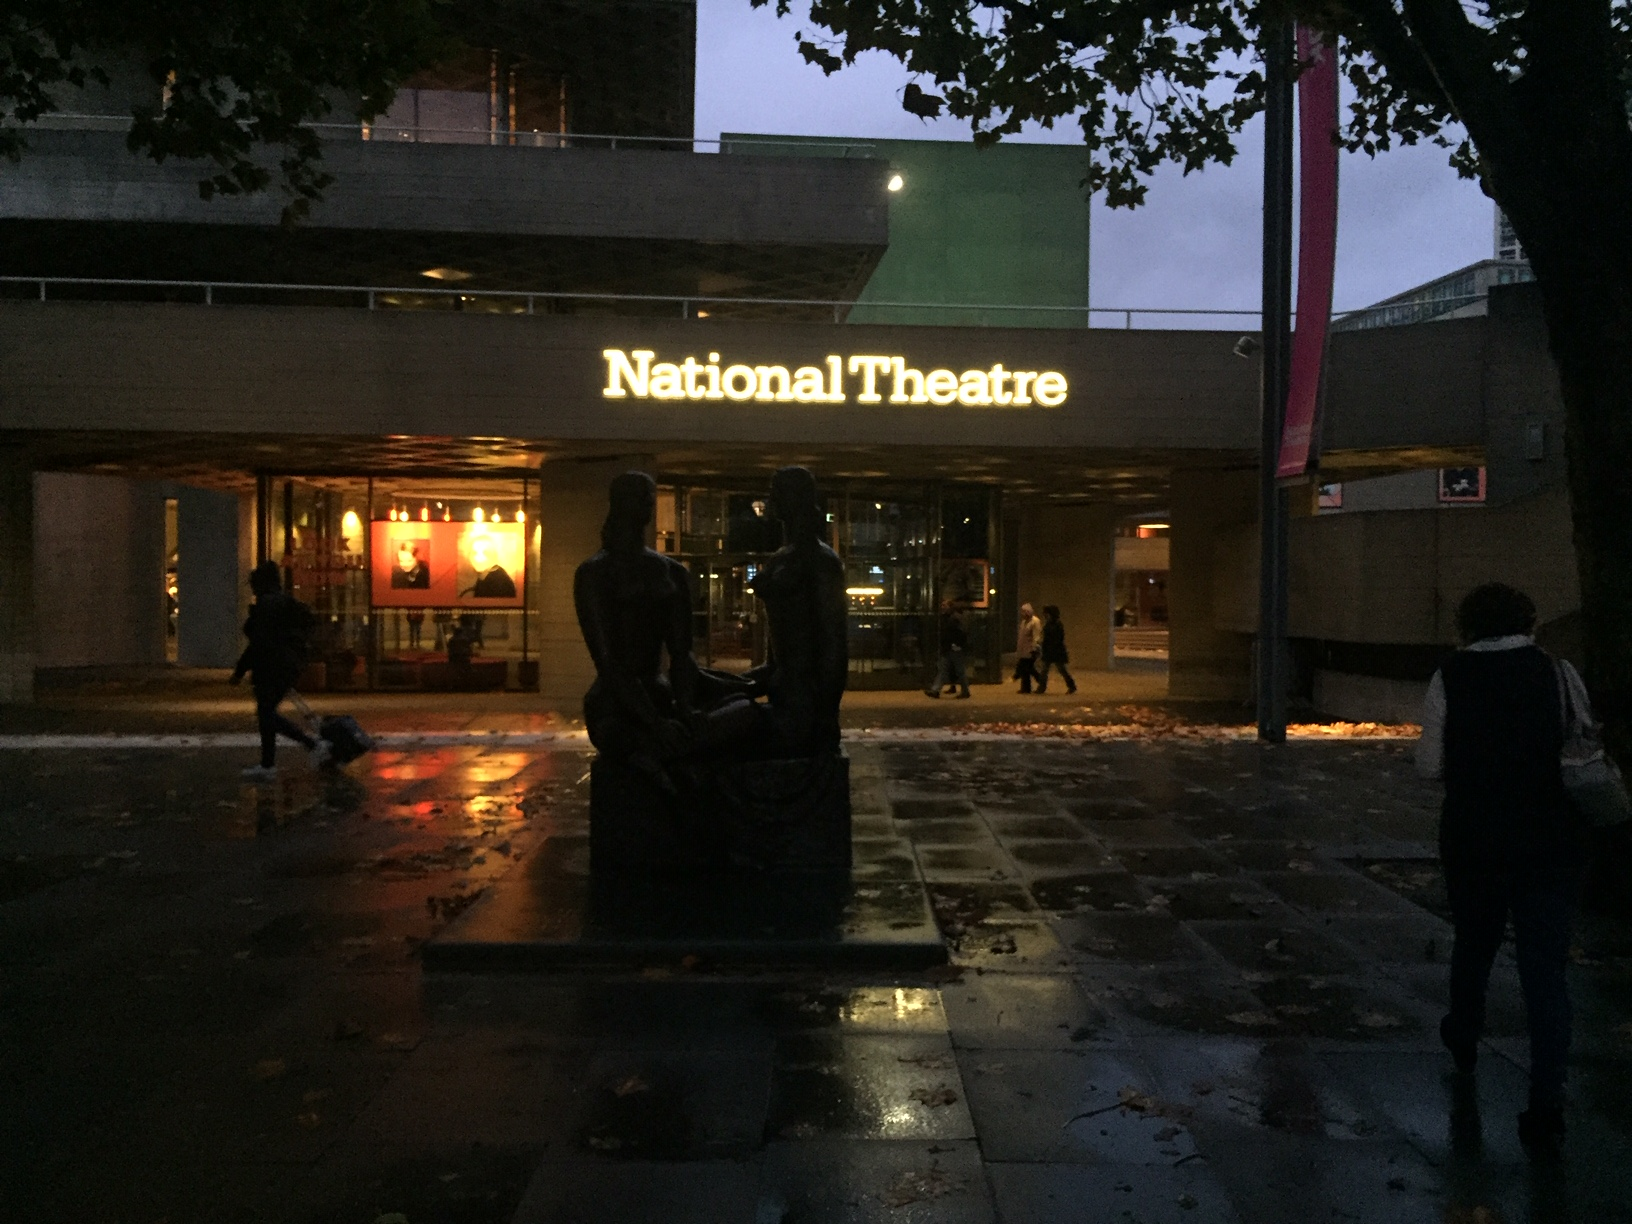 National Theatre in London - an insider guide